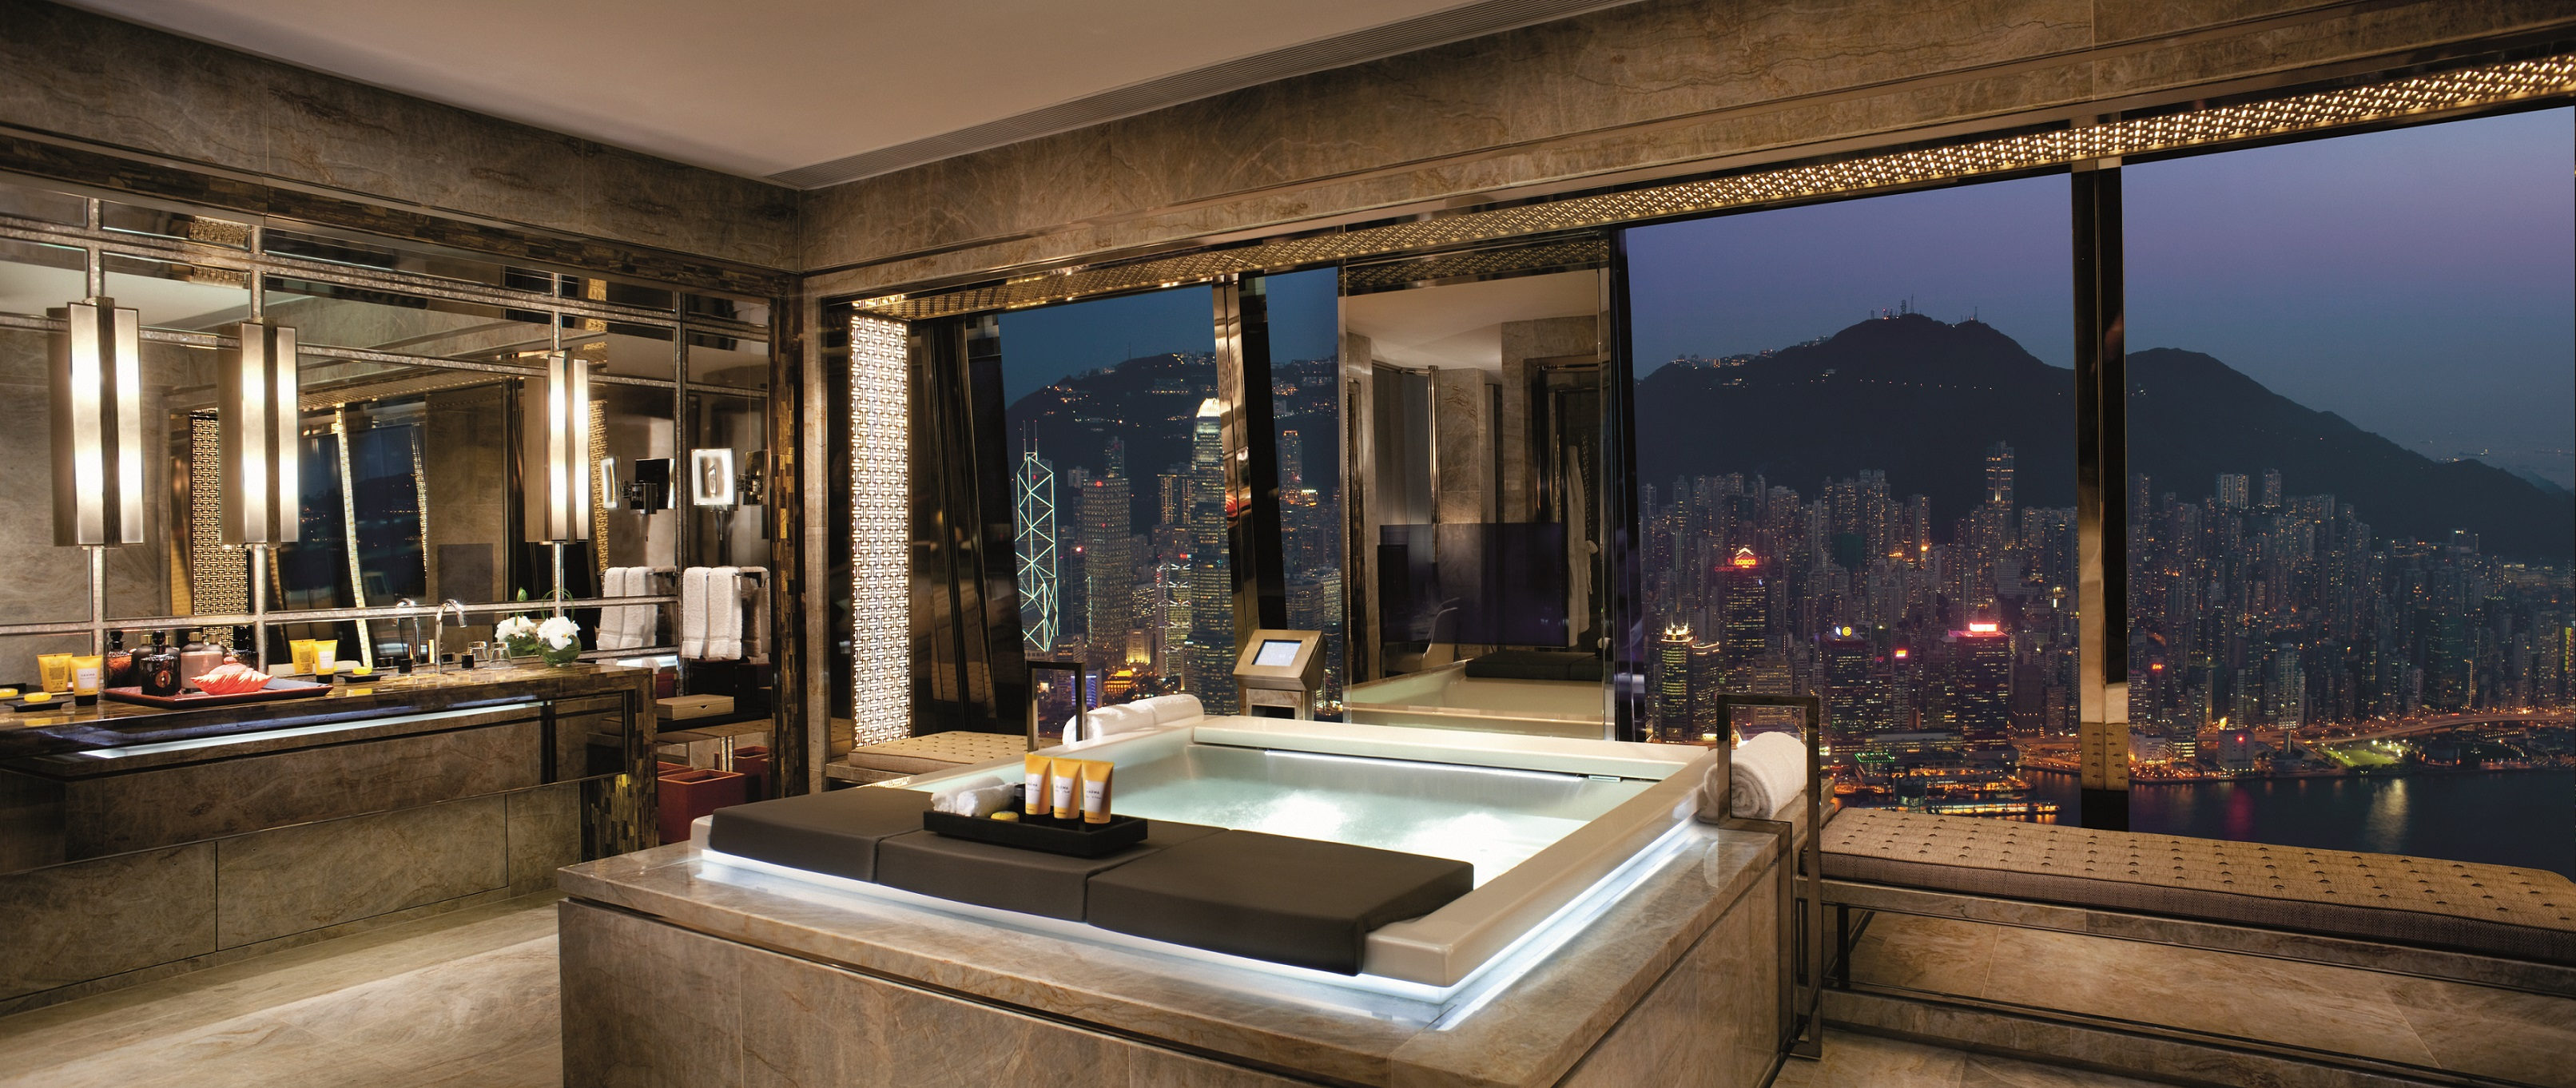 Pictures Of Luxury Bathrooms Cool Discover The World's Best Luxury Bathrooms Inspiration